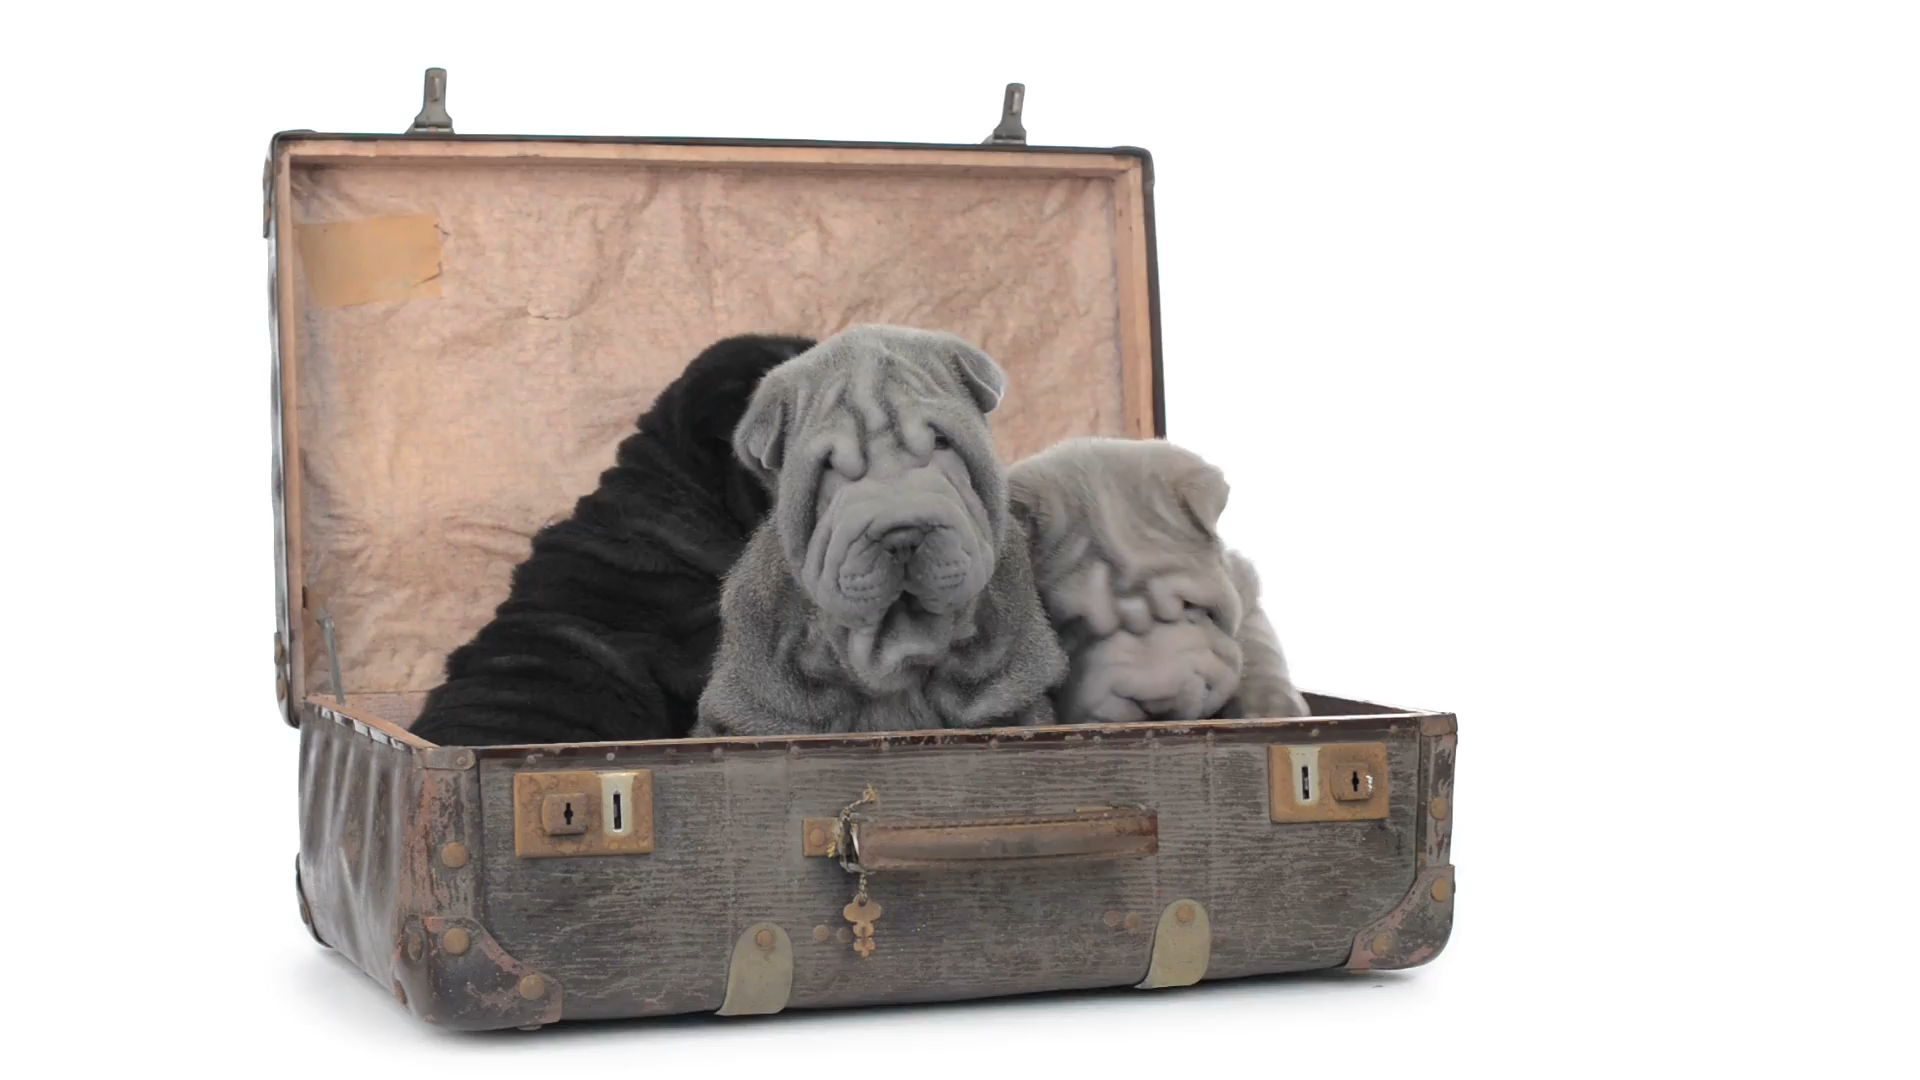 Dog, Cat and Other Pet Friendly Hotels at